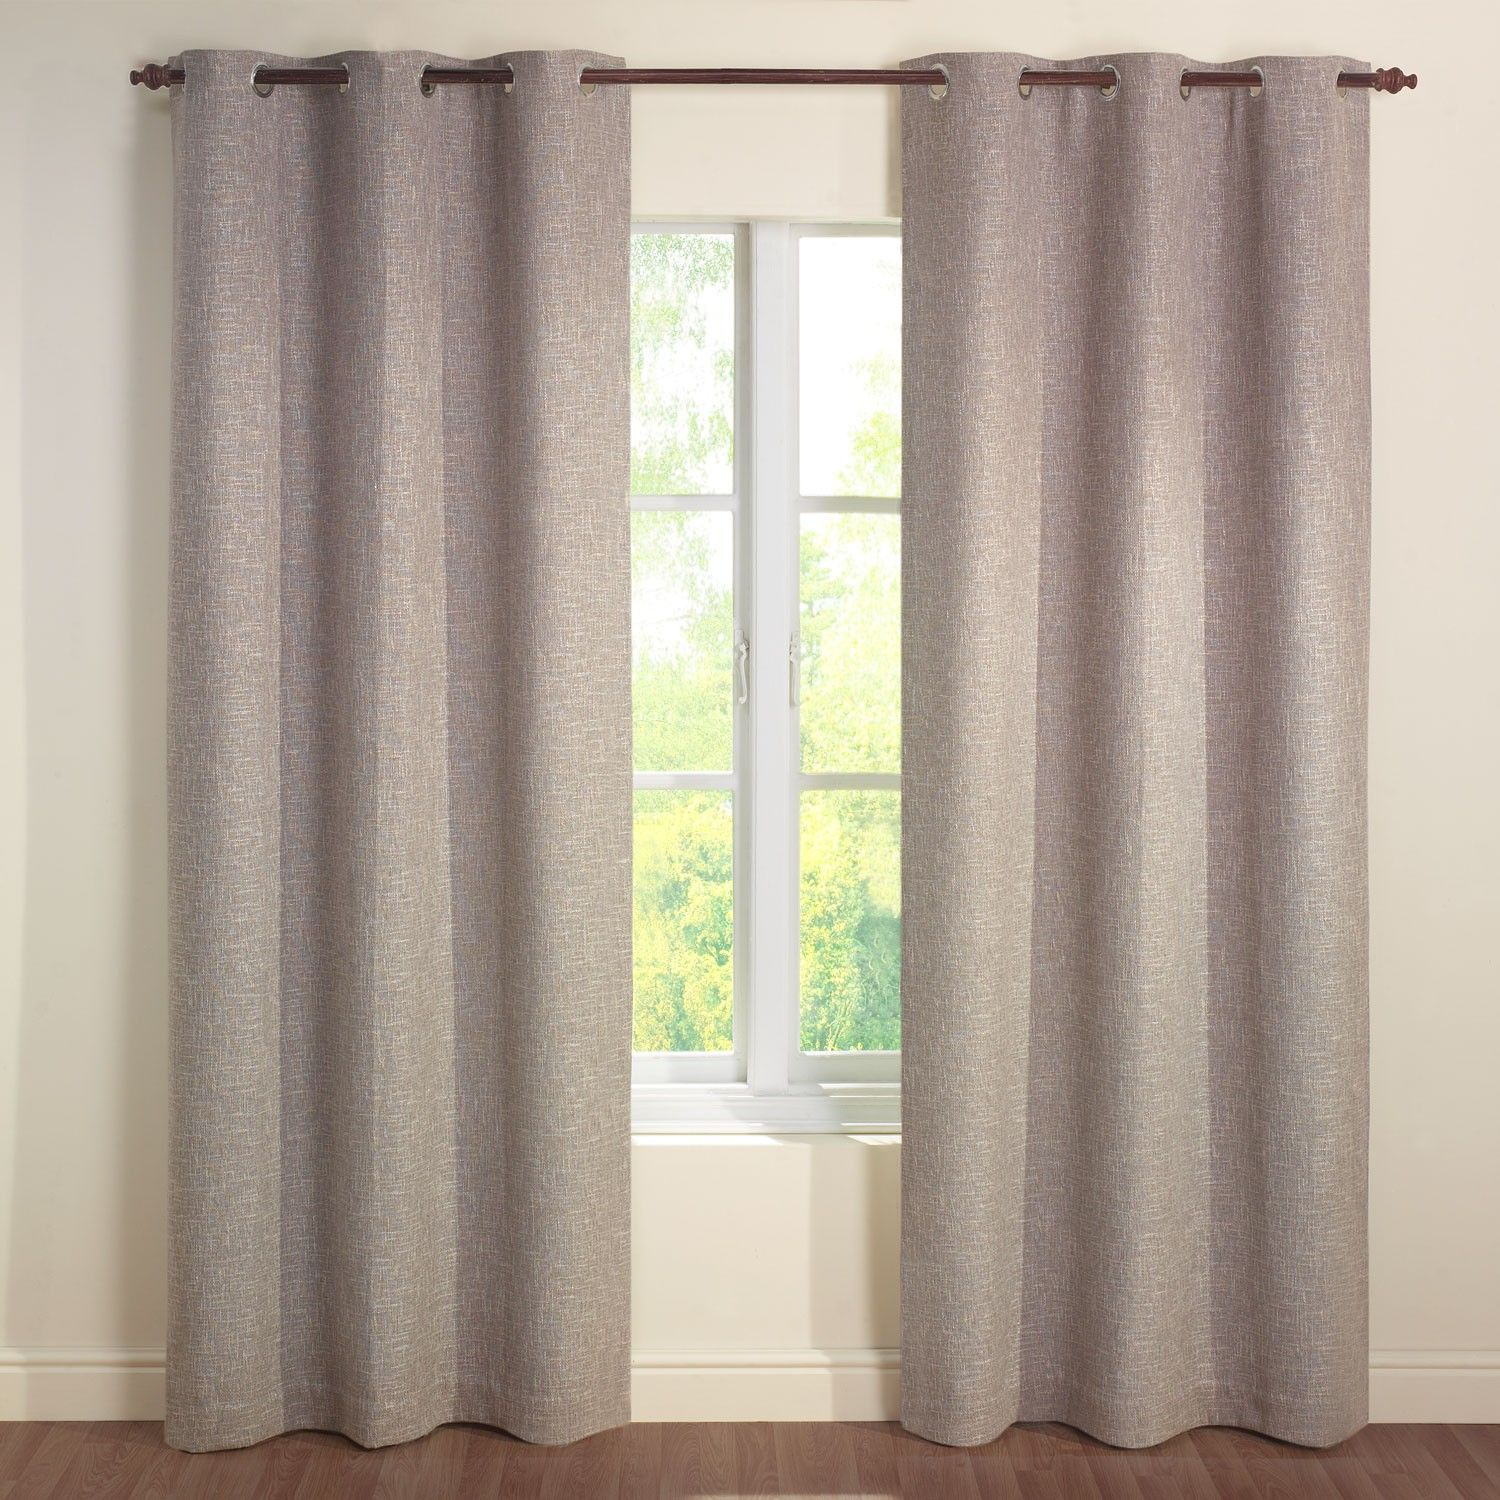 Tweed Mocha Luxury Jacquard Lined Eyelet Curtains Pair